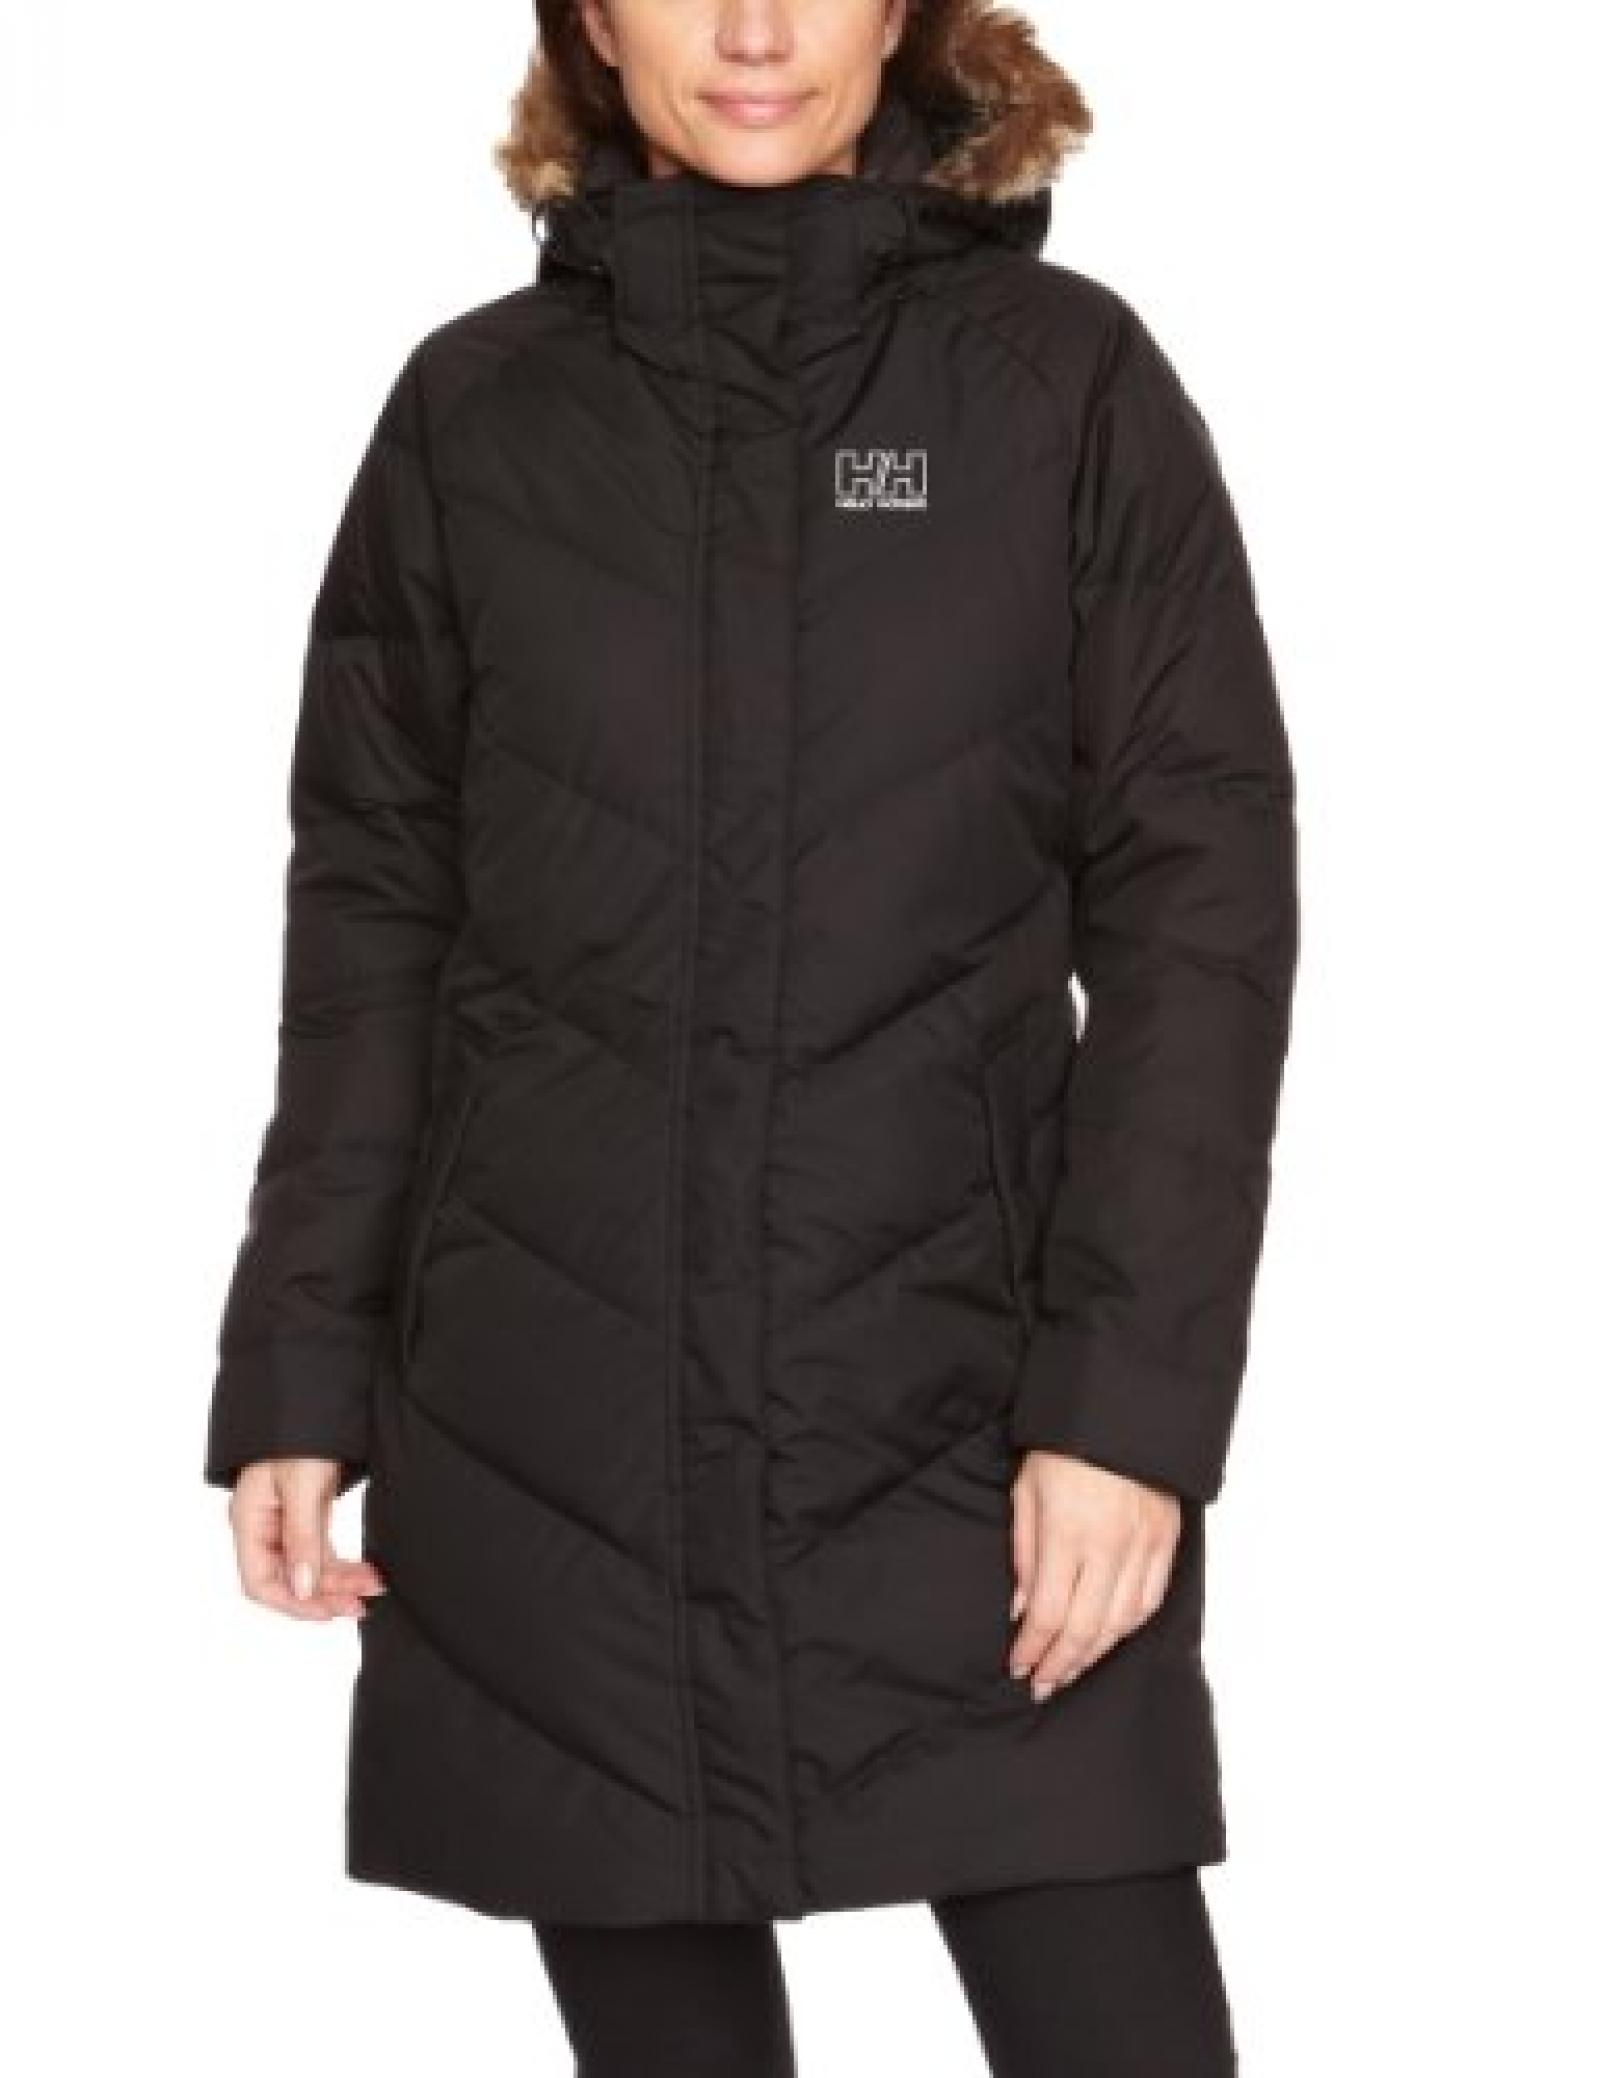 Helly Hansen Damen Parka Aden Puffy